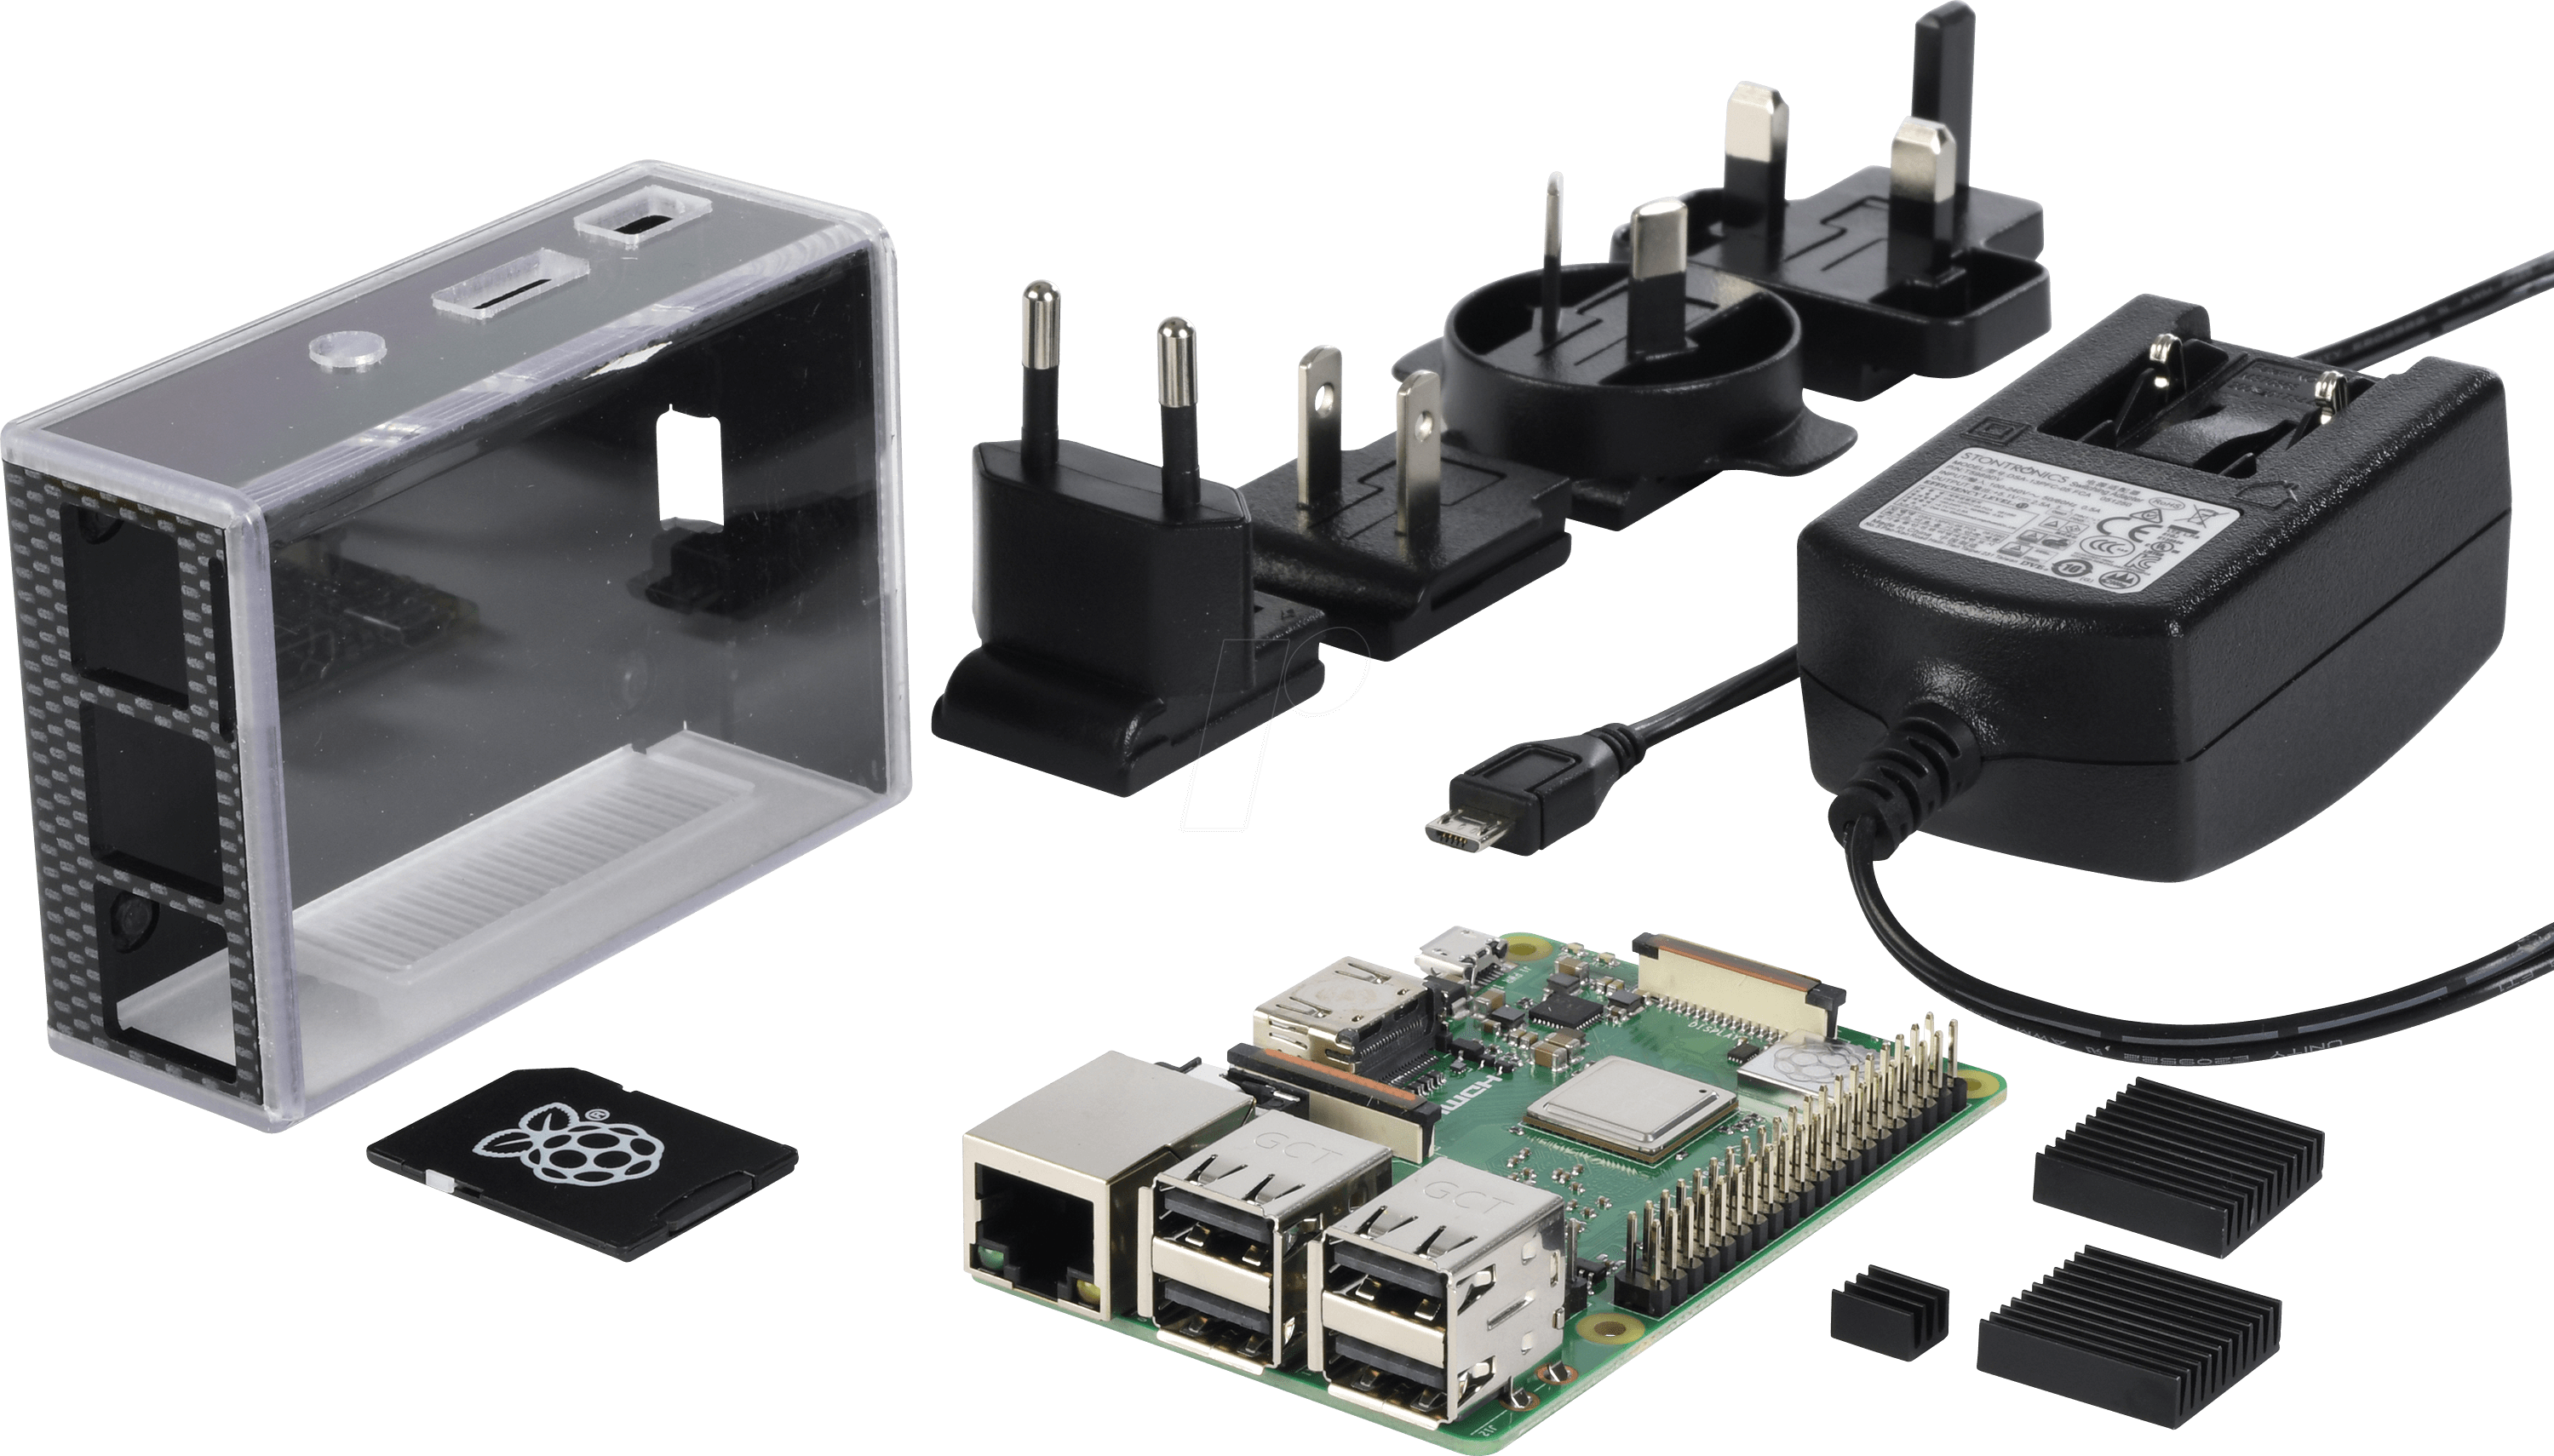 RASP 3 B+ ALL IN - The Reichelt Raspberry Pi 3 B+ all-in bundle